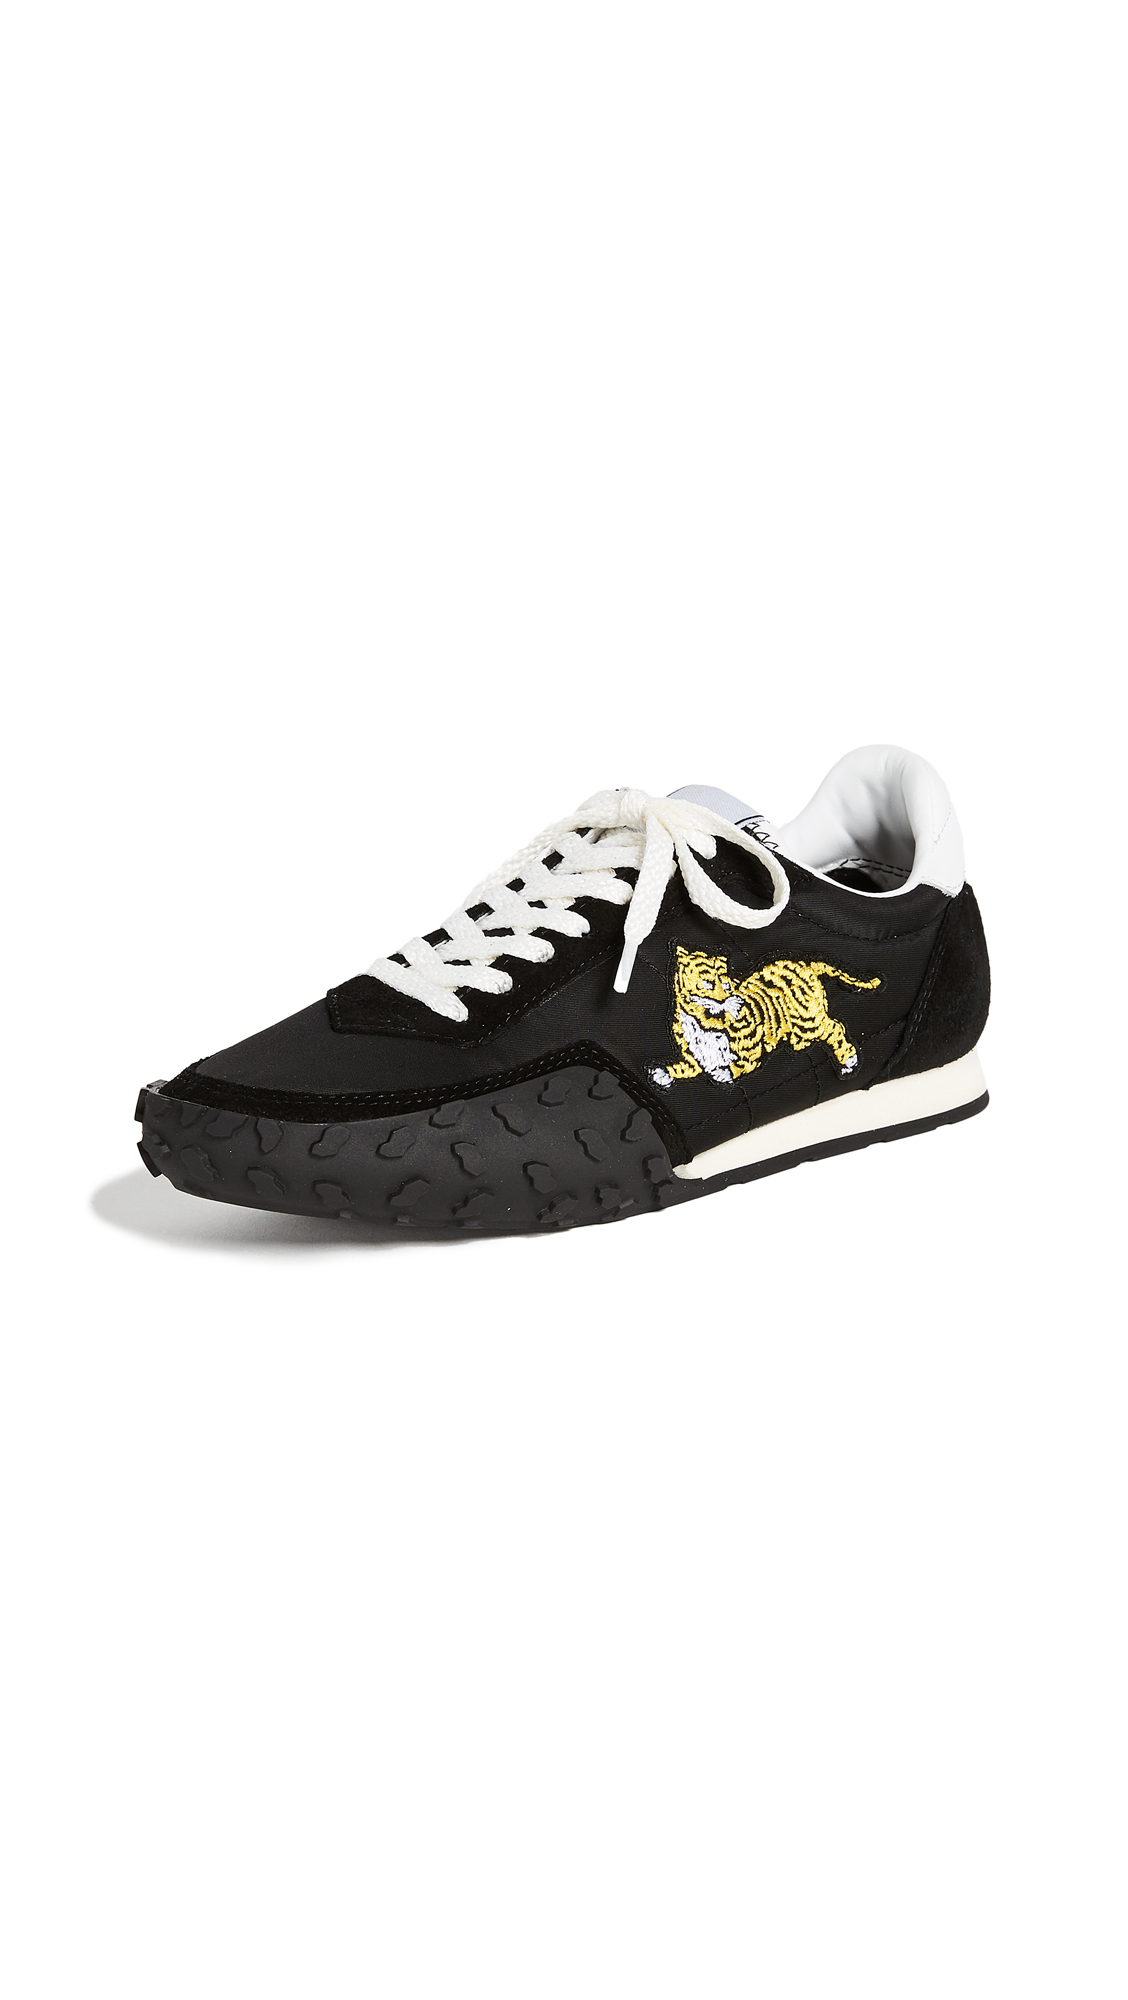 KENZO K-Run Memento Sneakers - Black